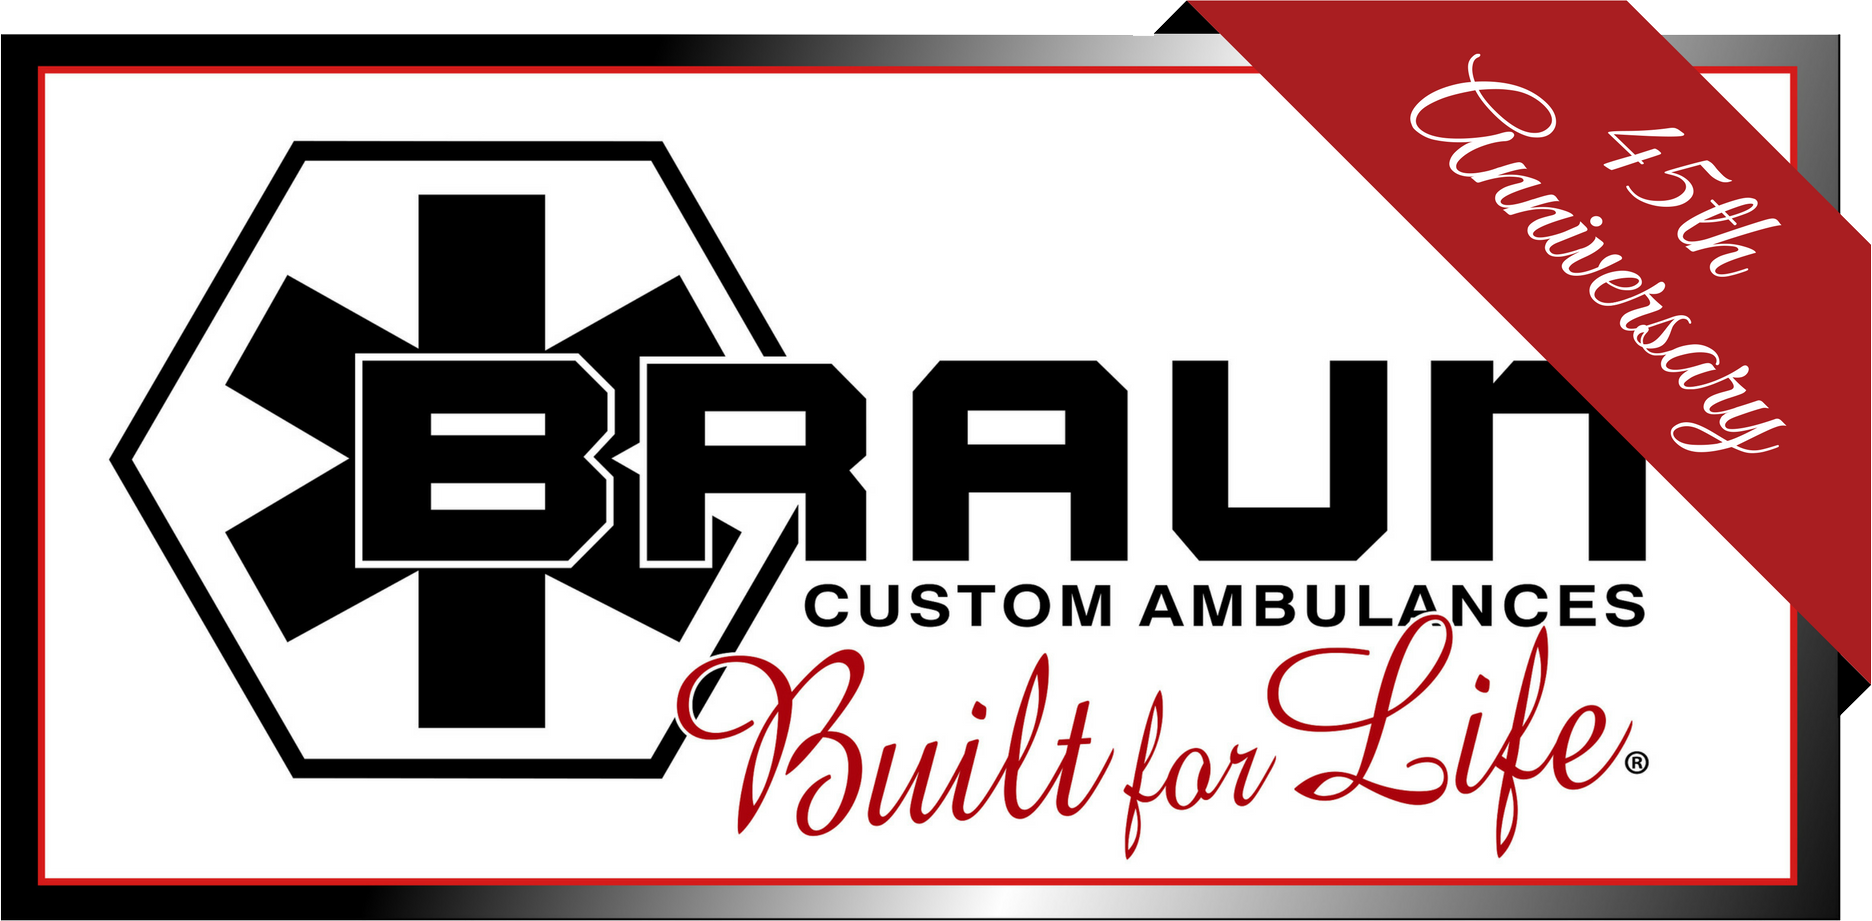 New Ambulance Units from Braun On Display at FDIC 2017: The leader in ambulance safety will have 6 new ambulances on display in the exhibit hall.